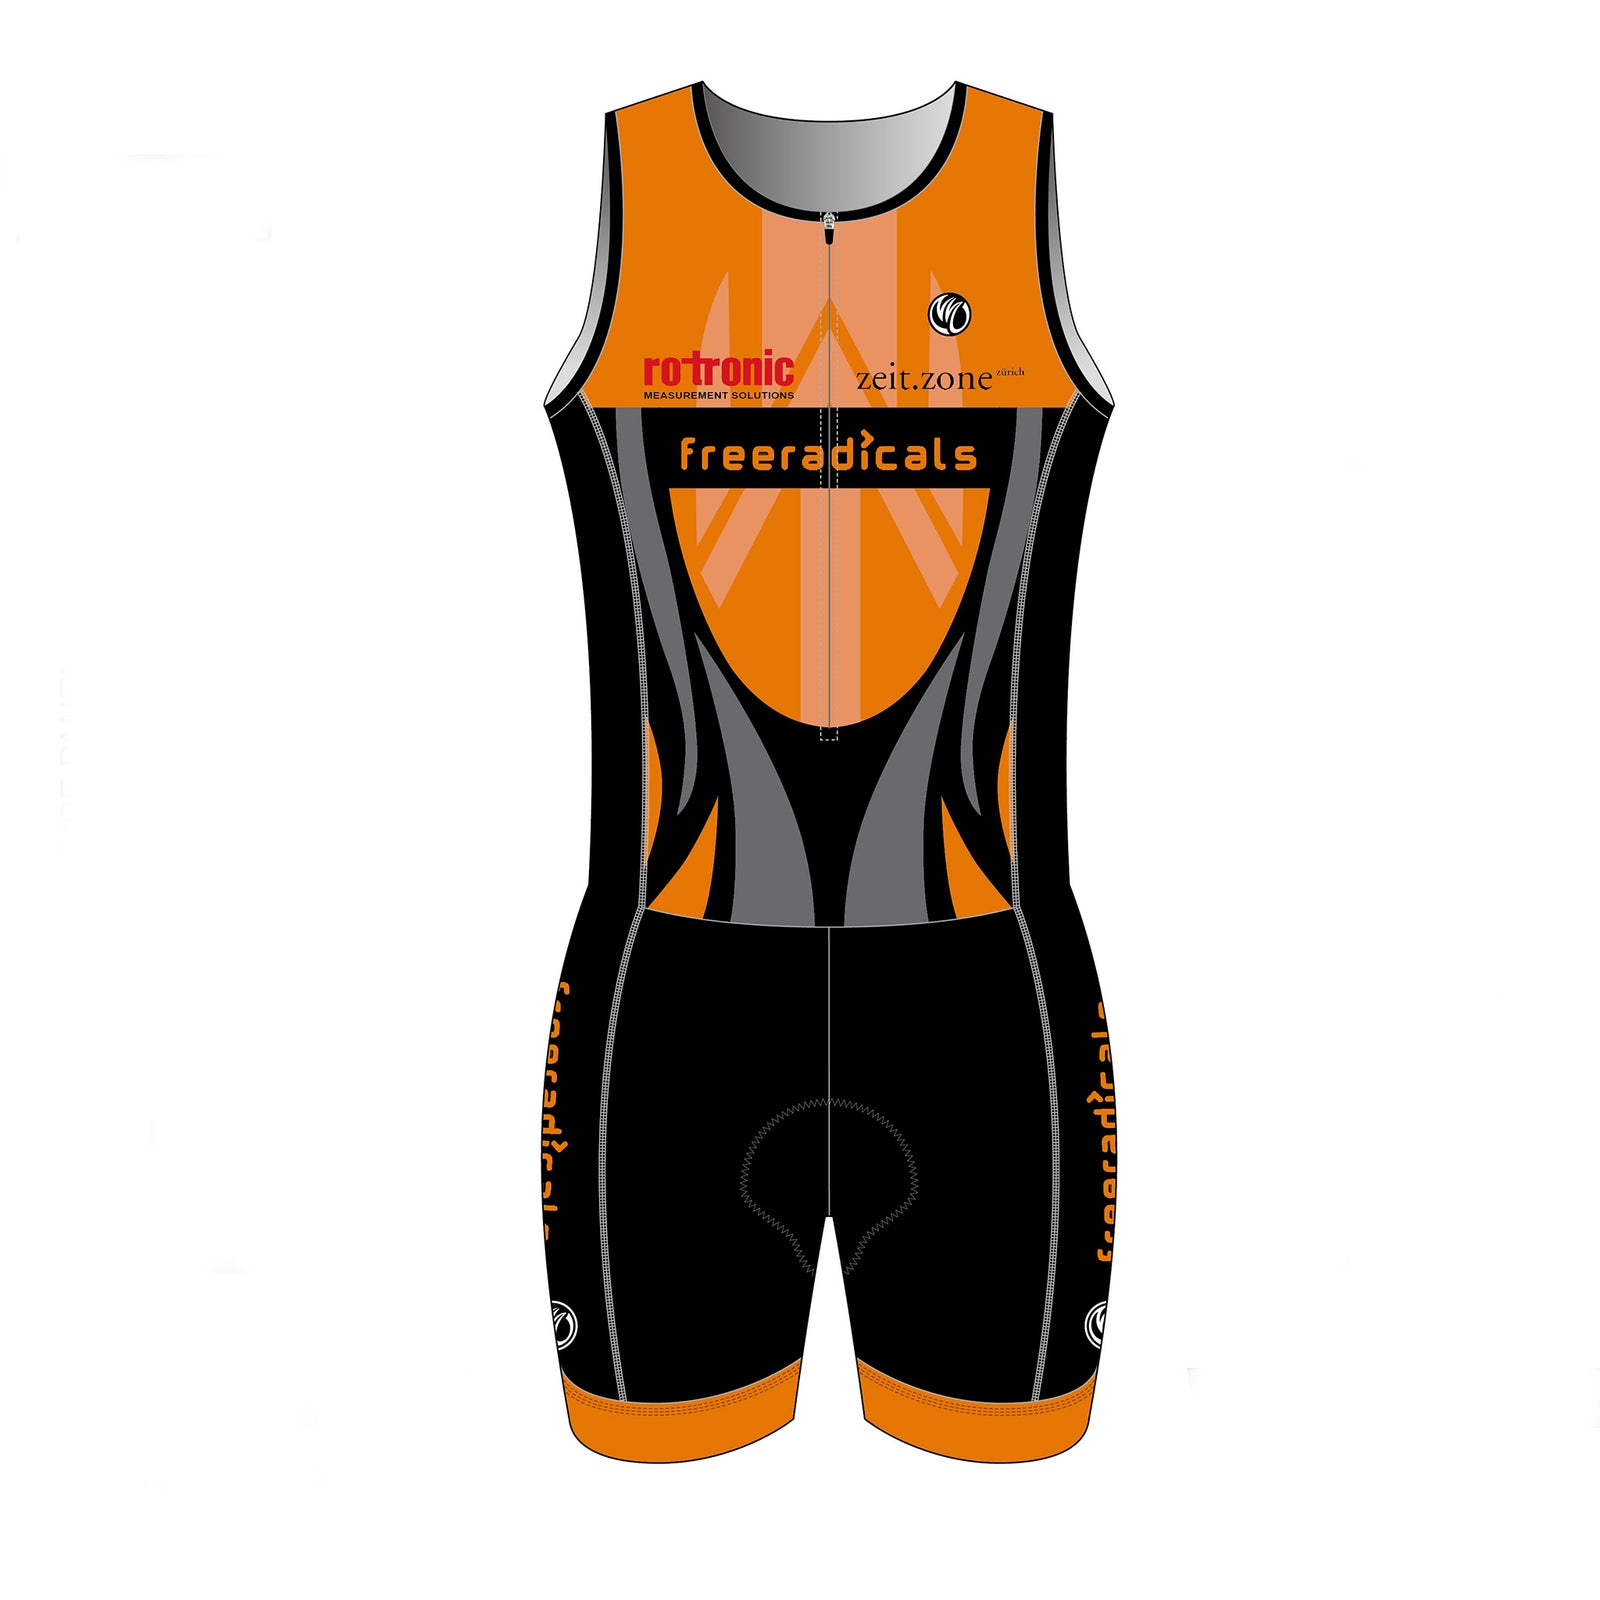 Freeradicals GOLD Sleeveless Tri Suit